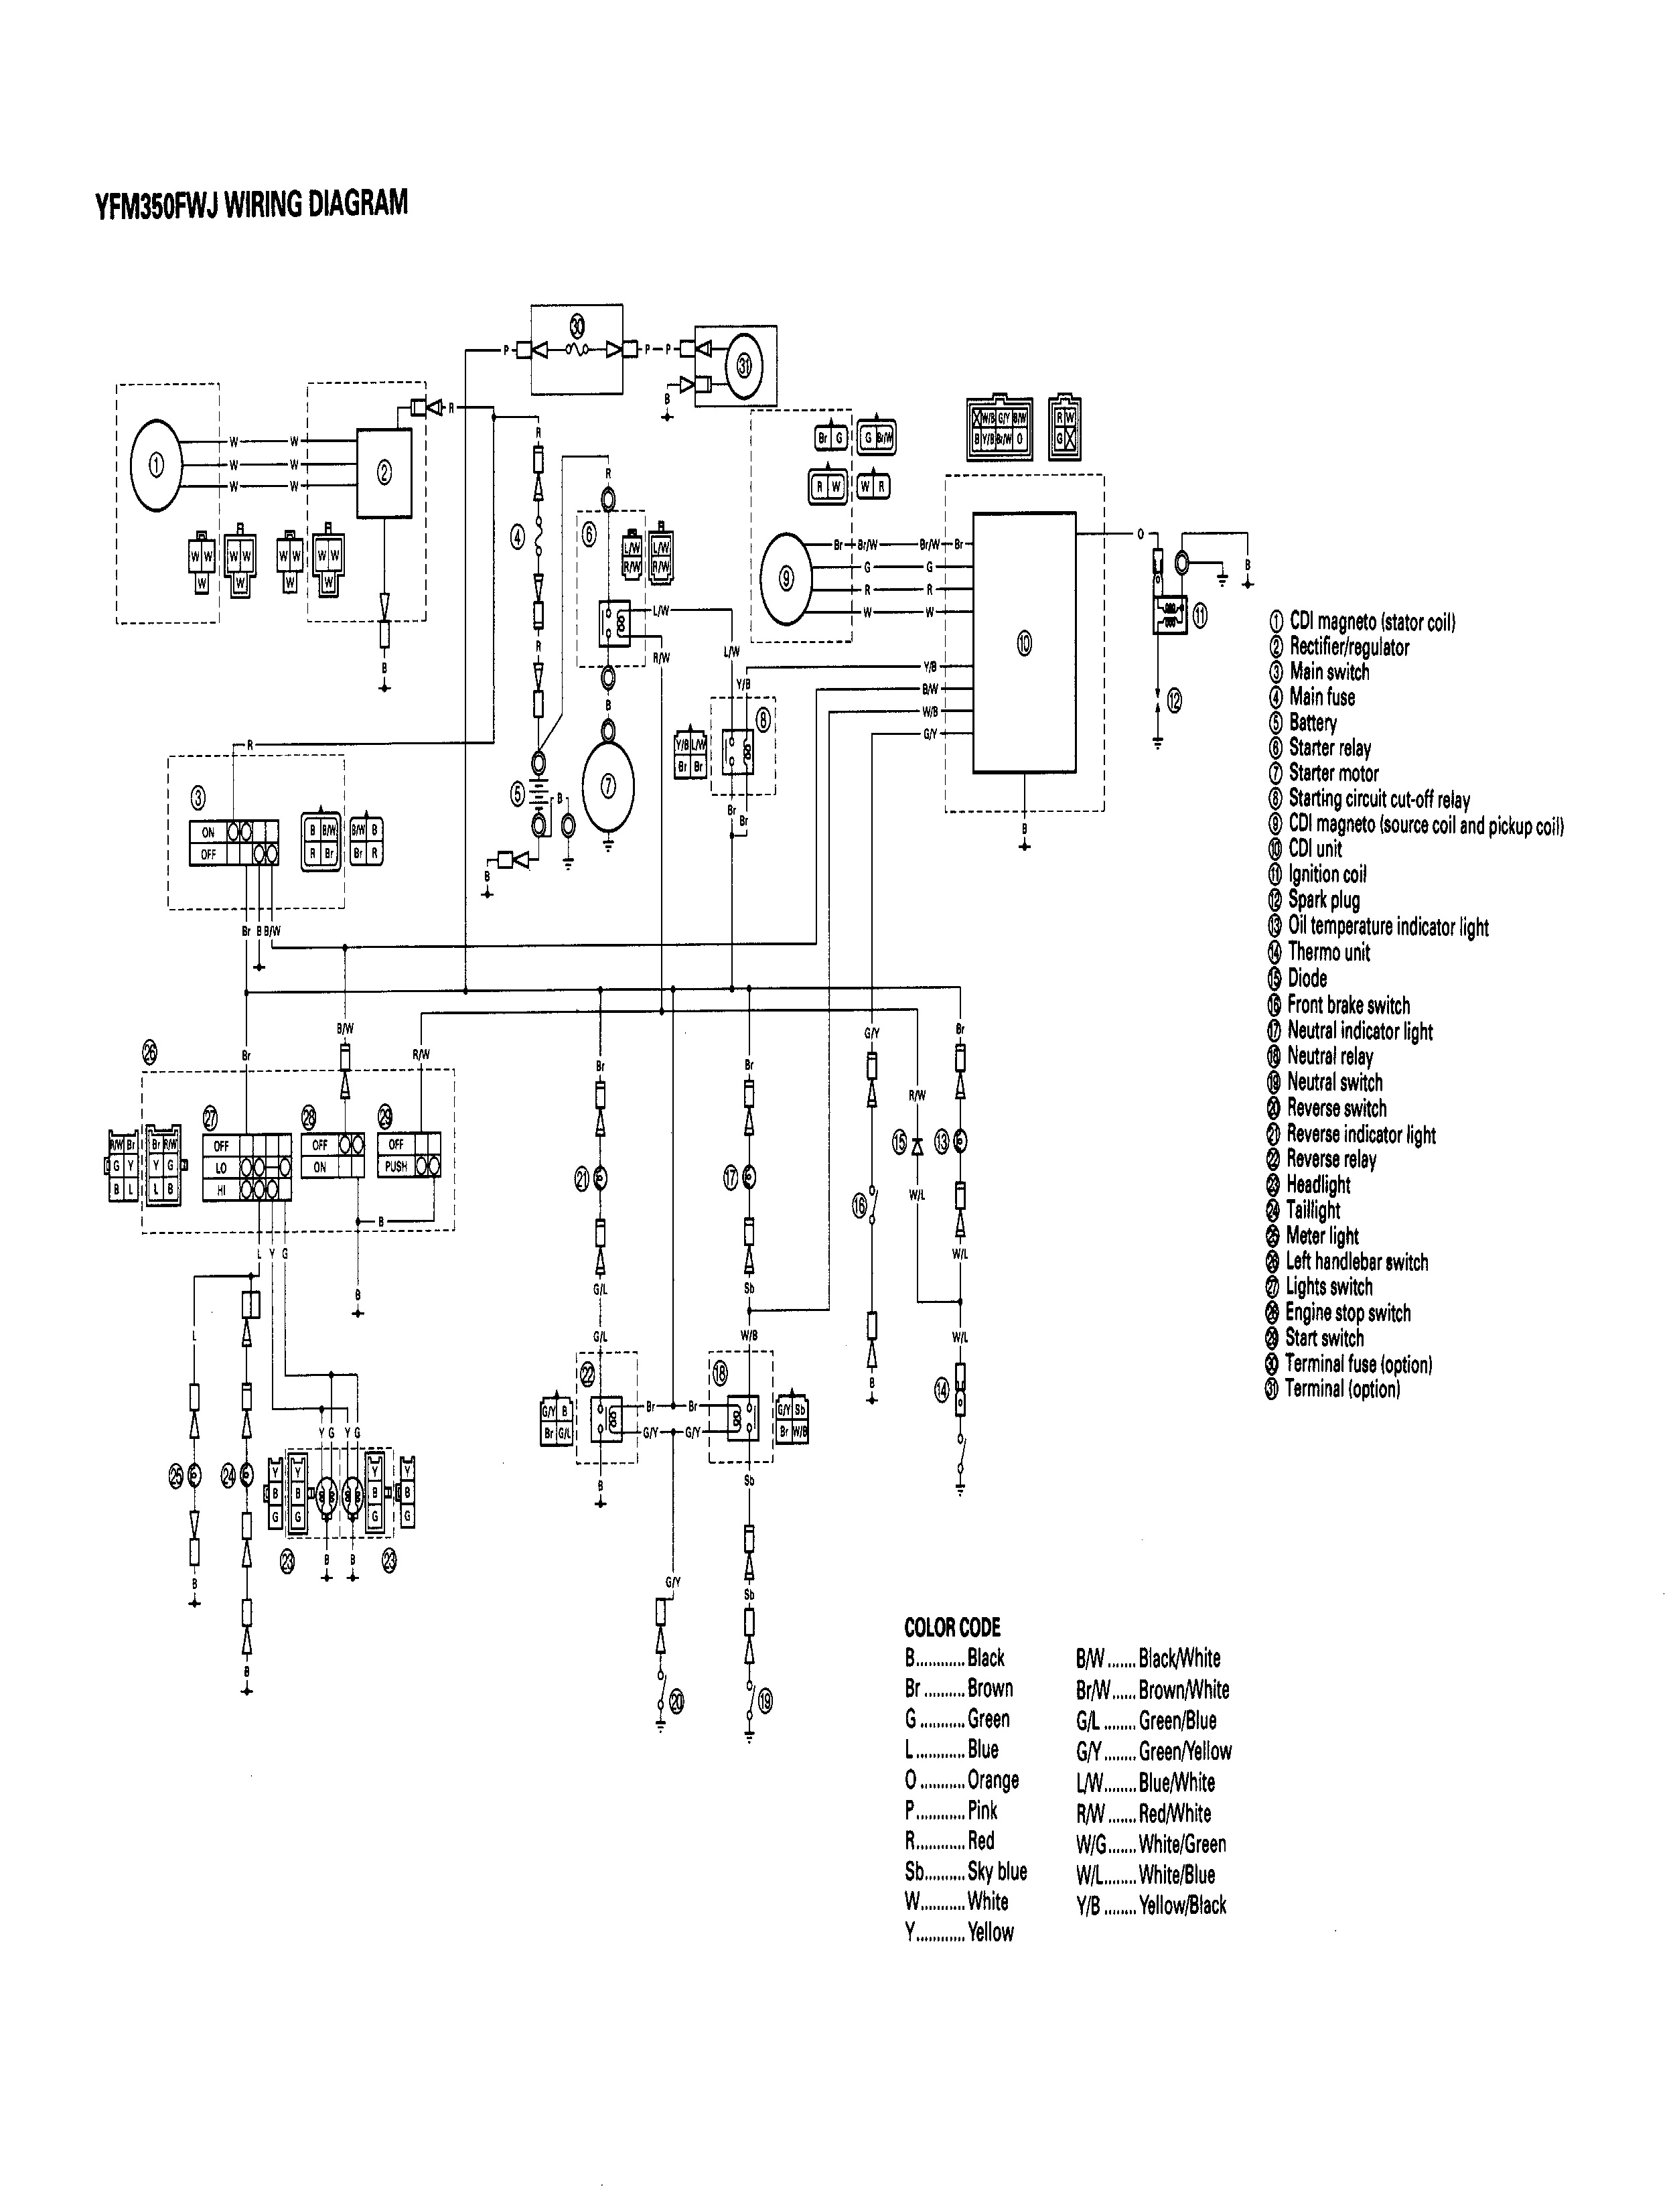 02 Rancher Es Wiring Diagram Archive Of Automotive 2008 Honda Schematic Diagrams Rh Ogmconsulting Co